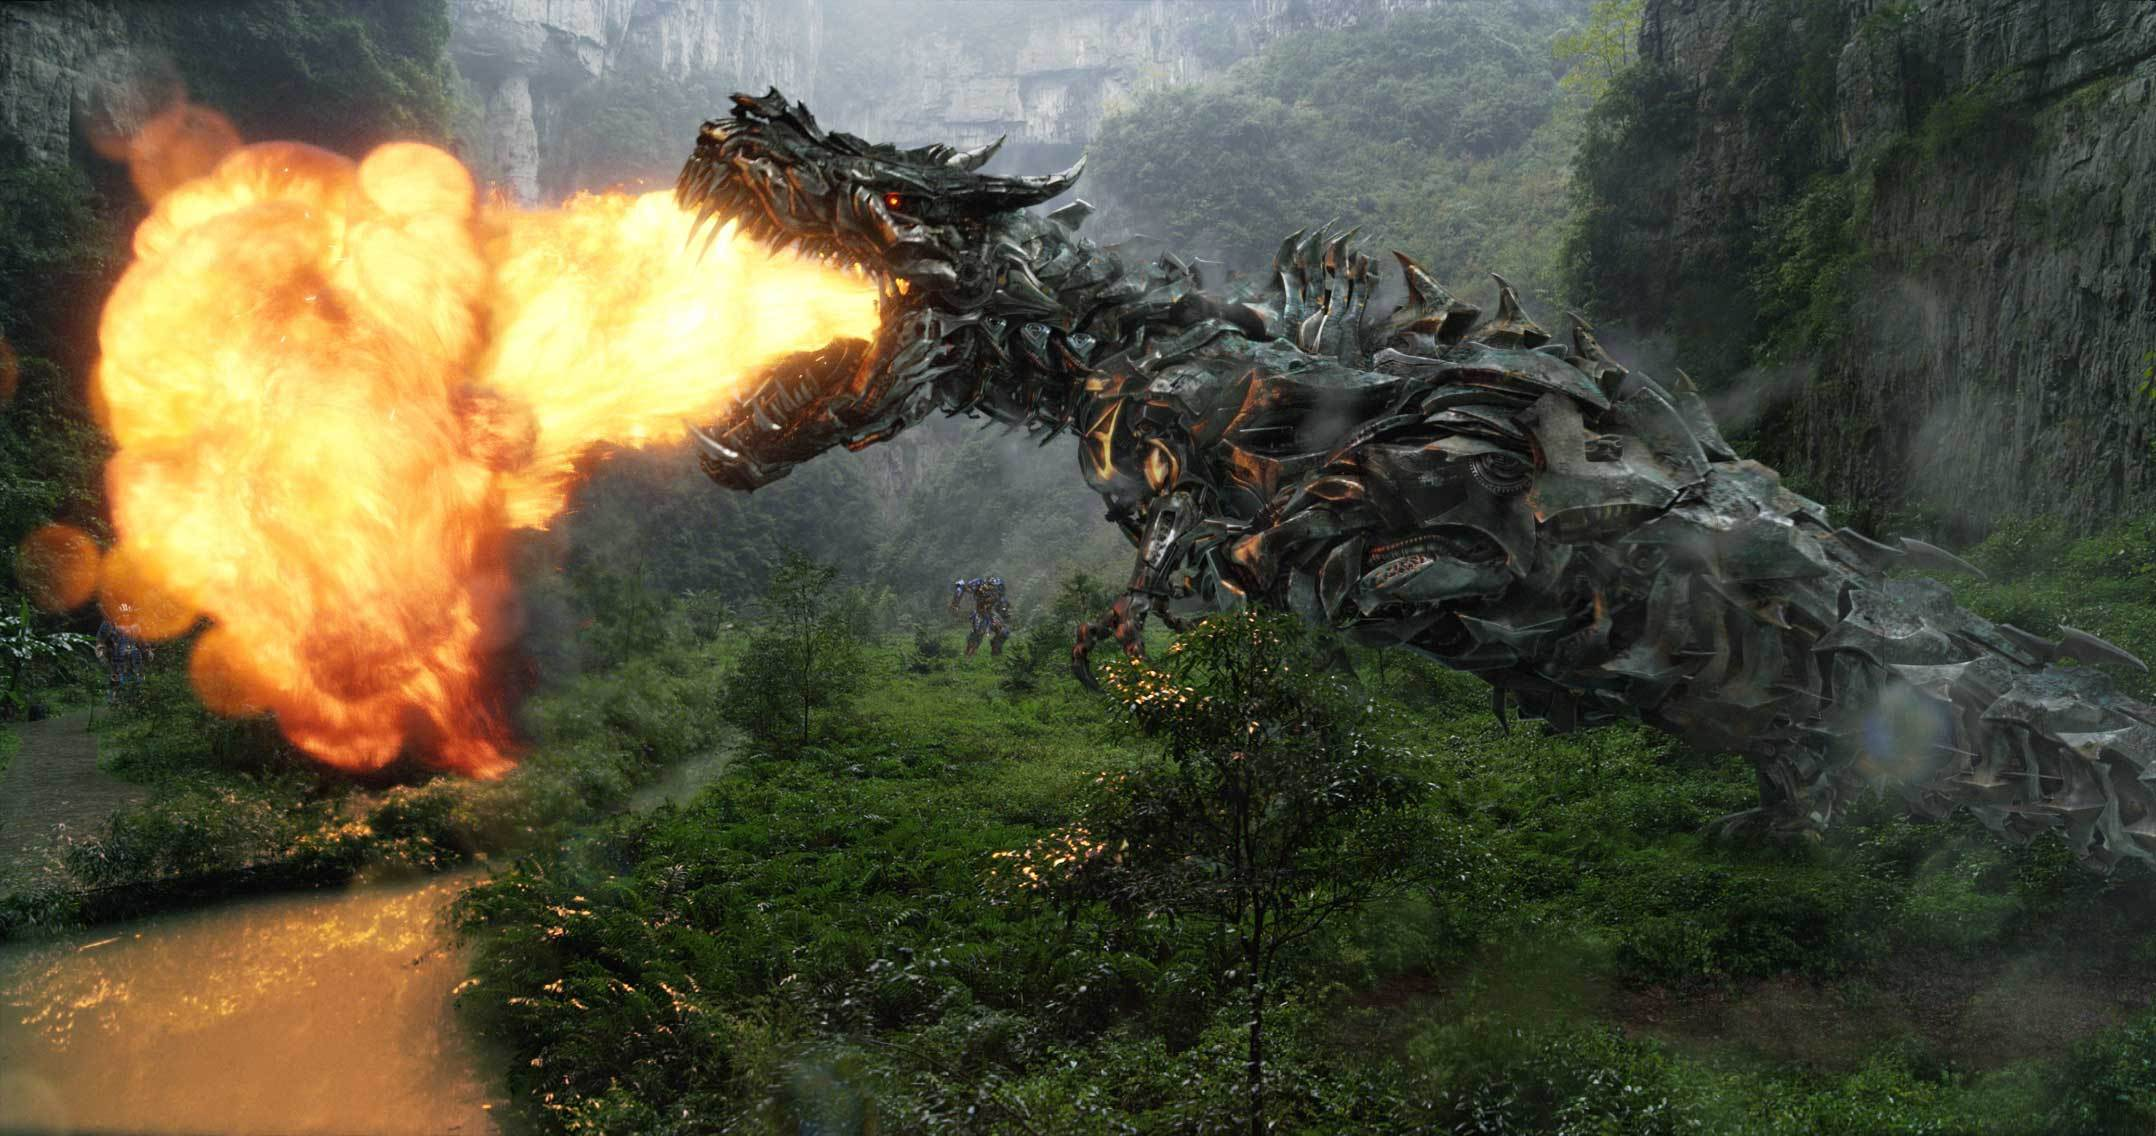 """Paramount Pictures delivered the global megahit of the summer in """"Transformers: Age of Extinction,"""" which recently surpassed $1 billion at the worldwide box office.  The film now stands as the highest-grossing theatrical release of all time in China. (Photo: Industrial Light & Magic for Paramount)"""